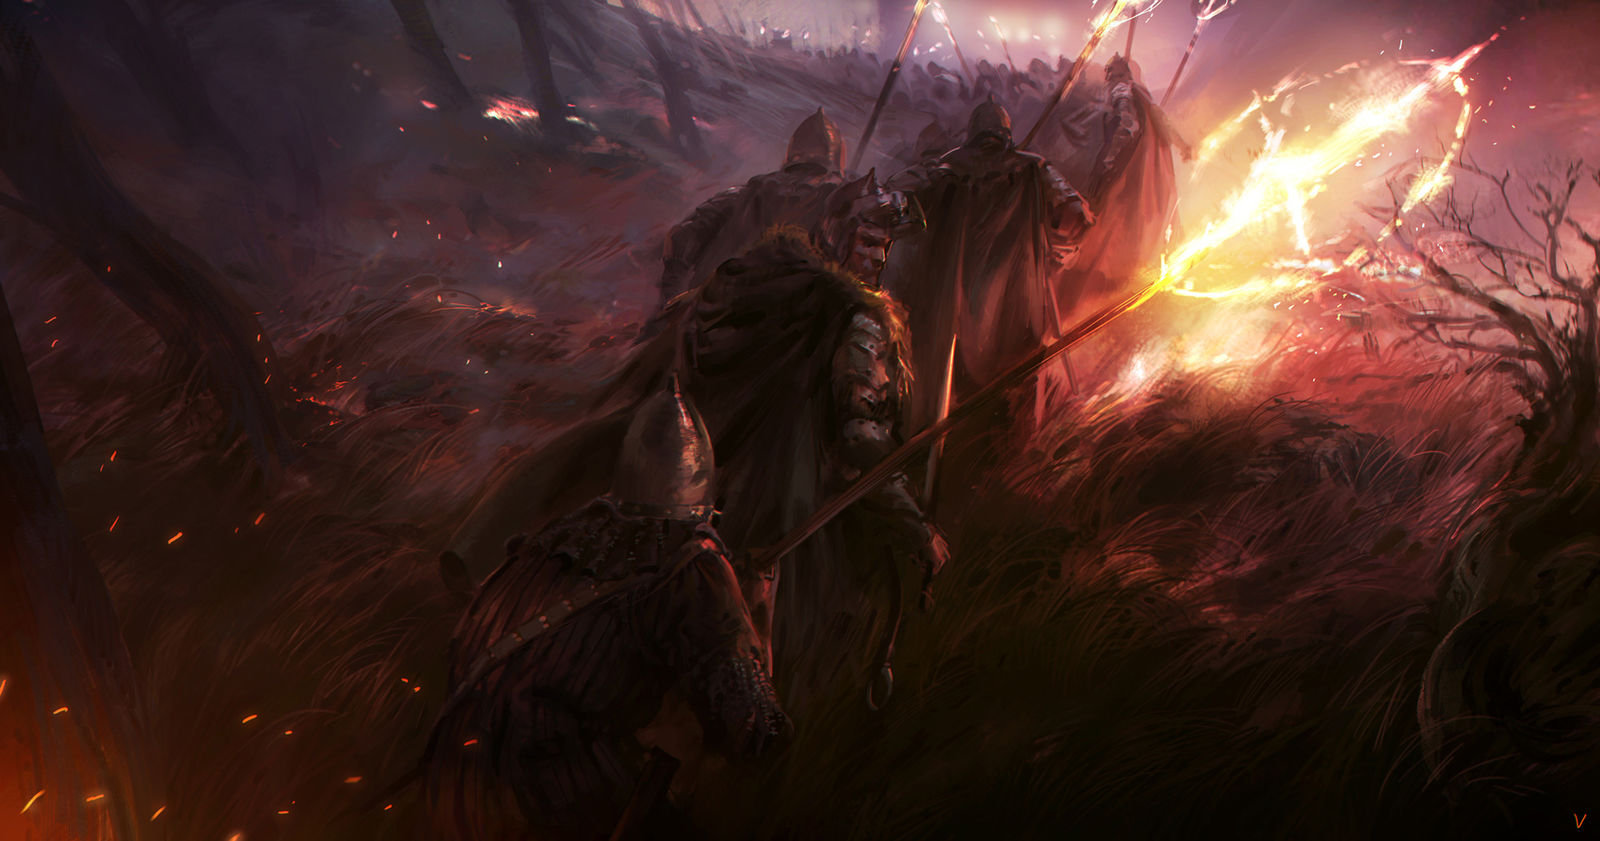 Victor Cloux Digital Painting Illustration Knight Fire Attack